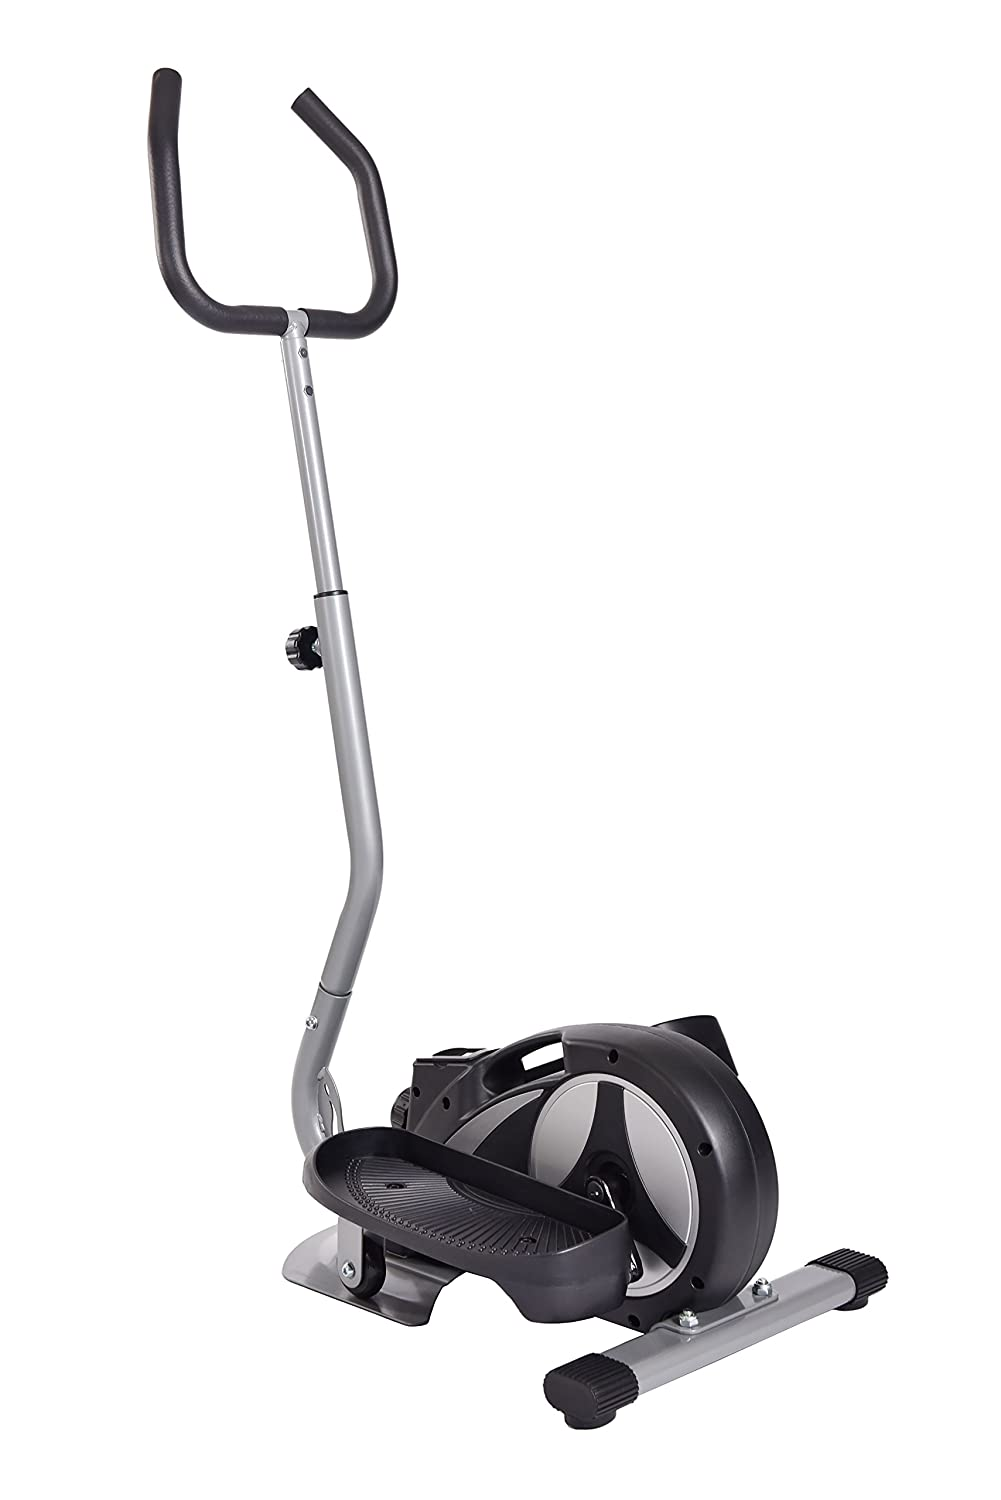 Amazon.com : stamina in motion compact strider pro : sports & outdoors